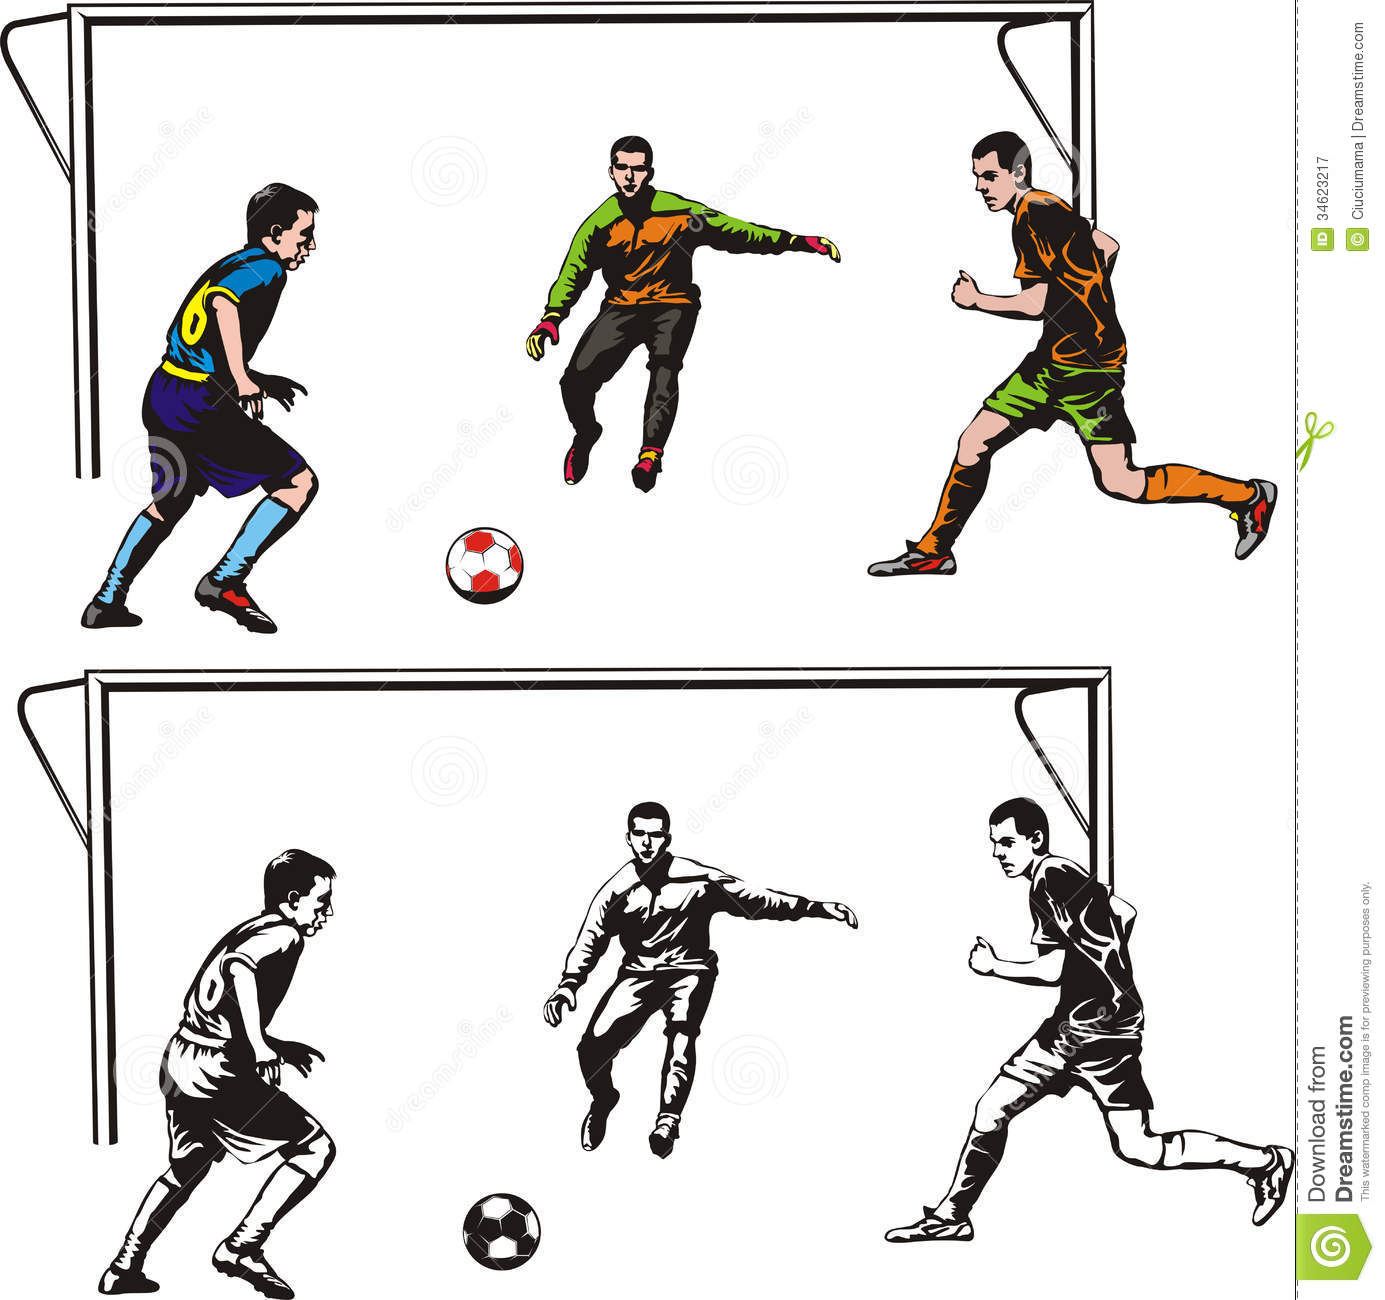 Team Football Game Clip Art.